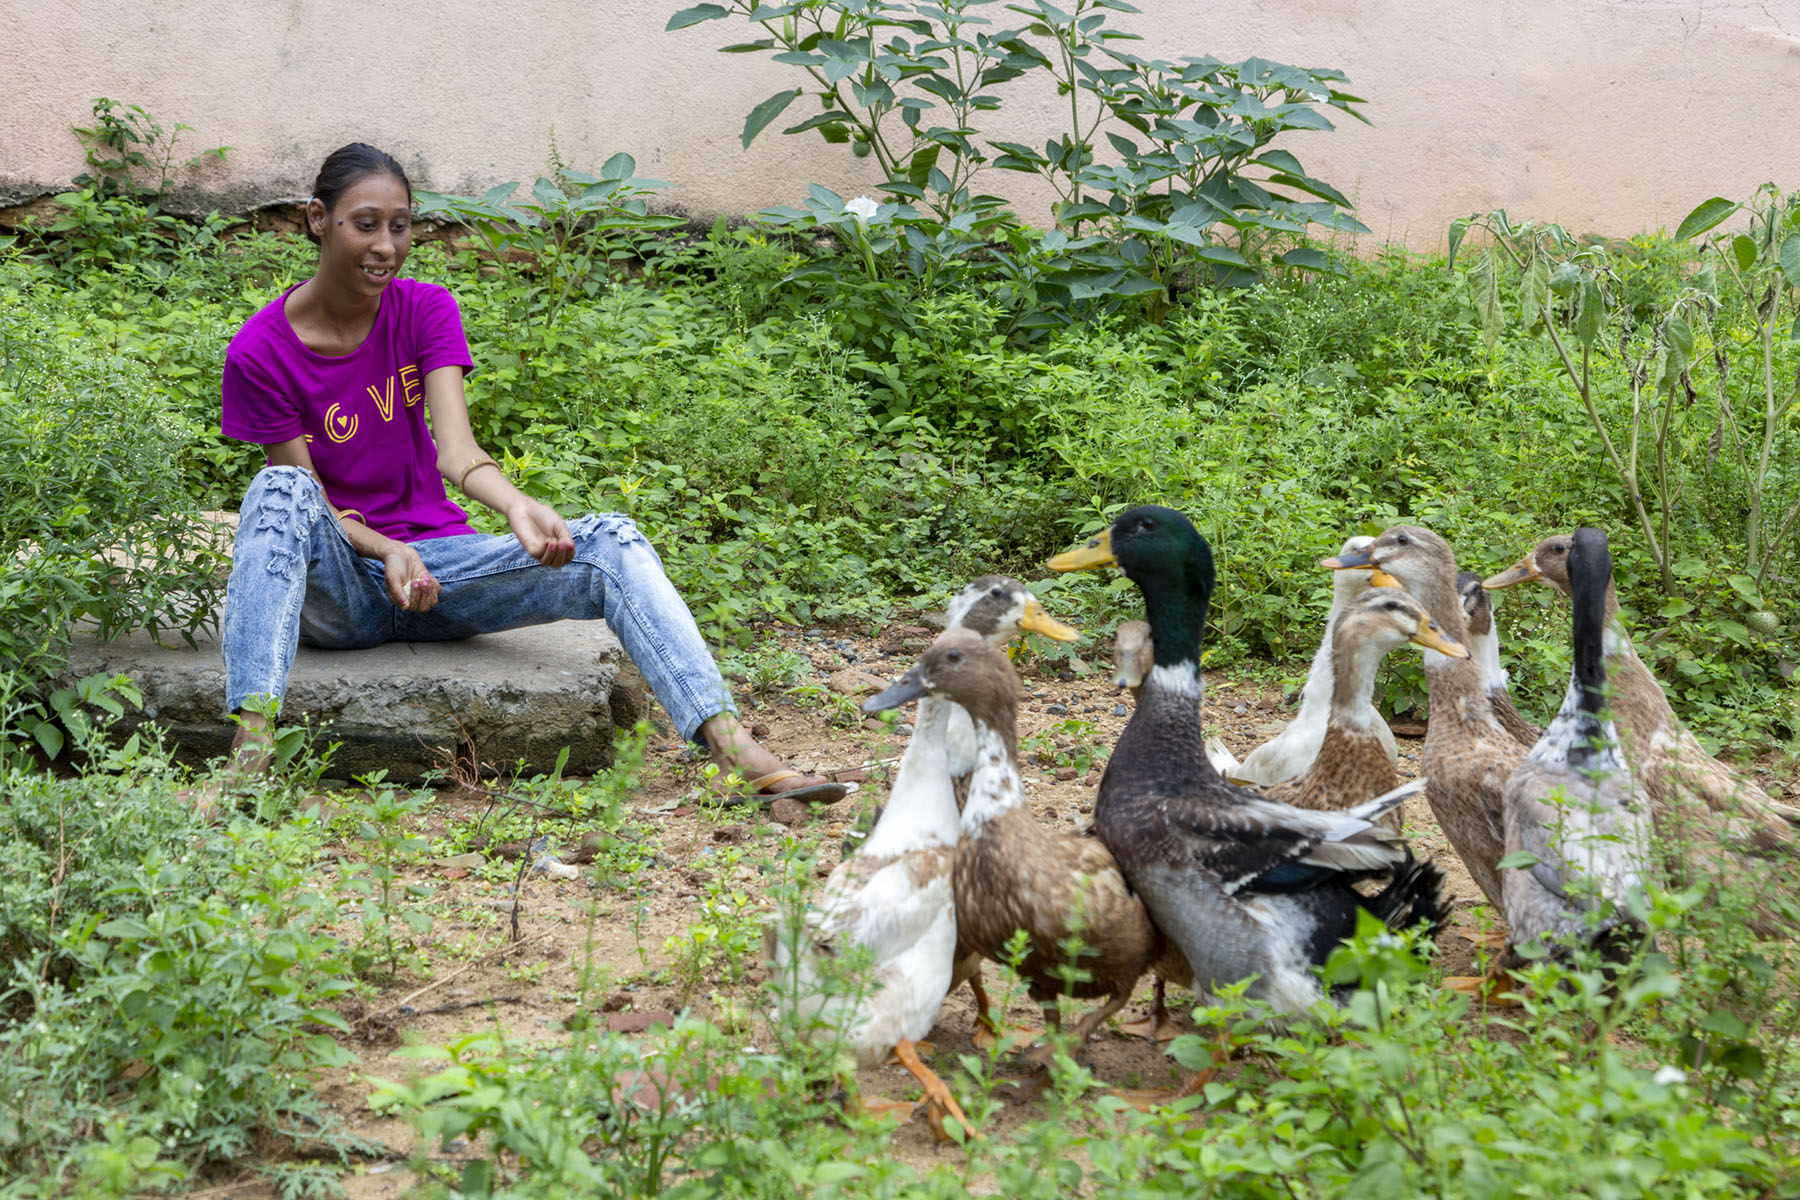 Roji in purple T-shirt and light blue tight jeans is sitting outdoors on a large, flat slab. Wild plants and weeds grow all around her. In front of her is a flock of brown, white, black and grey ducks. She is holding out both arms and cupped palms towards them. Her right palm holds what appears to be rice or some other white-coloured feed.